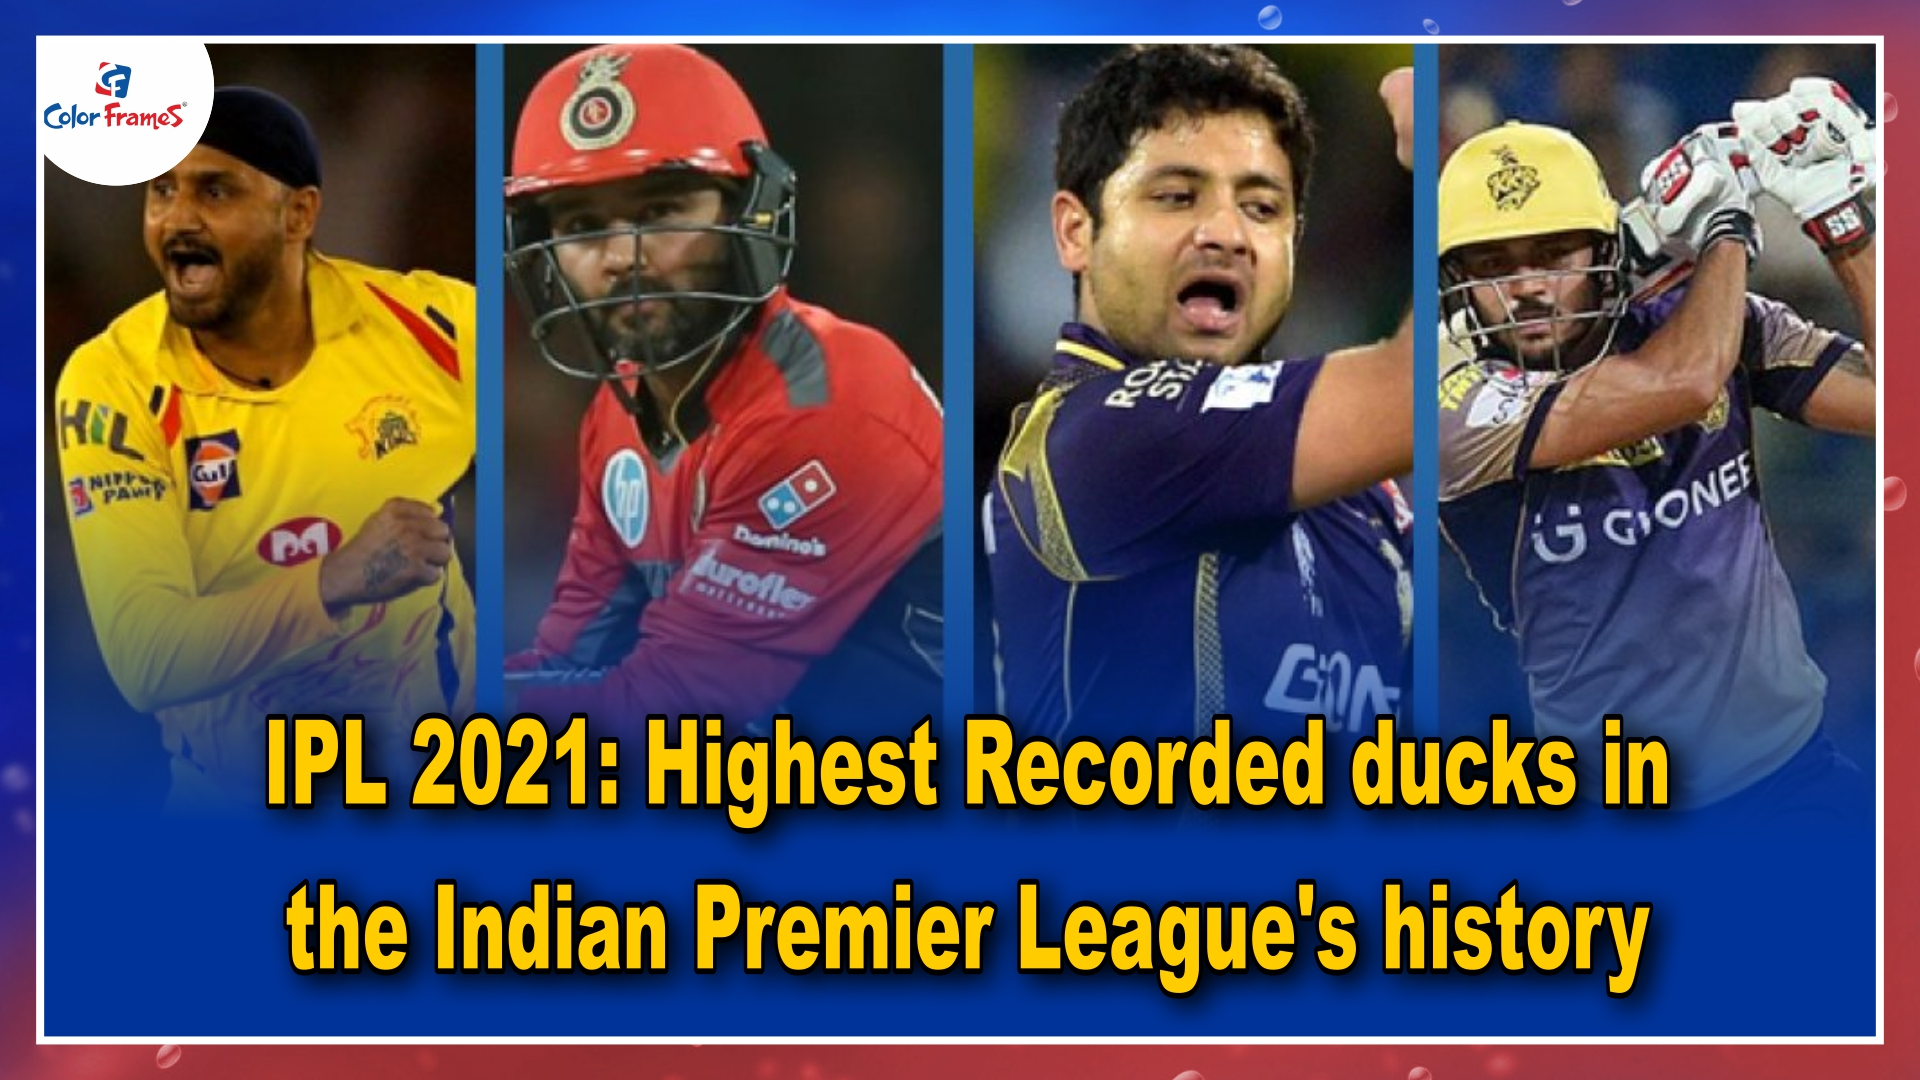 IPL 2021: Highest Recorded ducks in the Indian Premier League's history